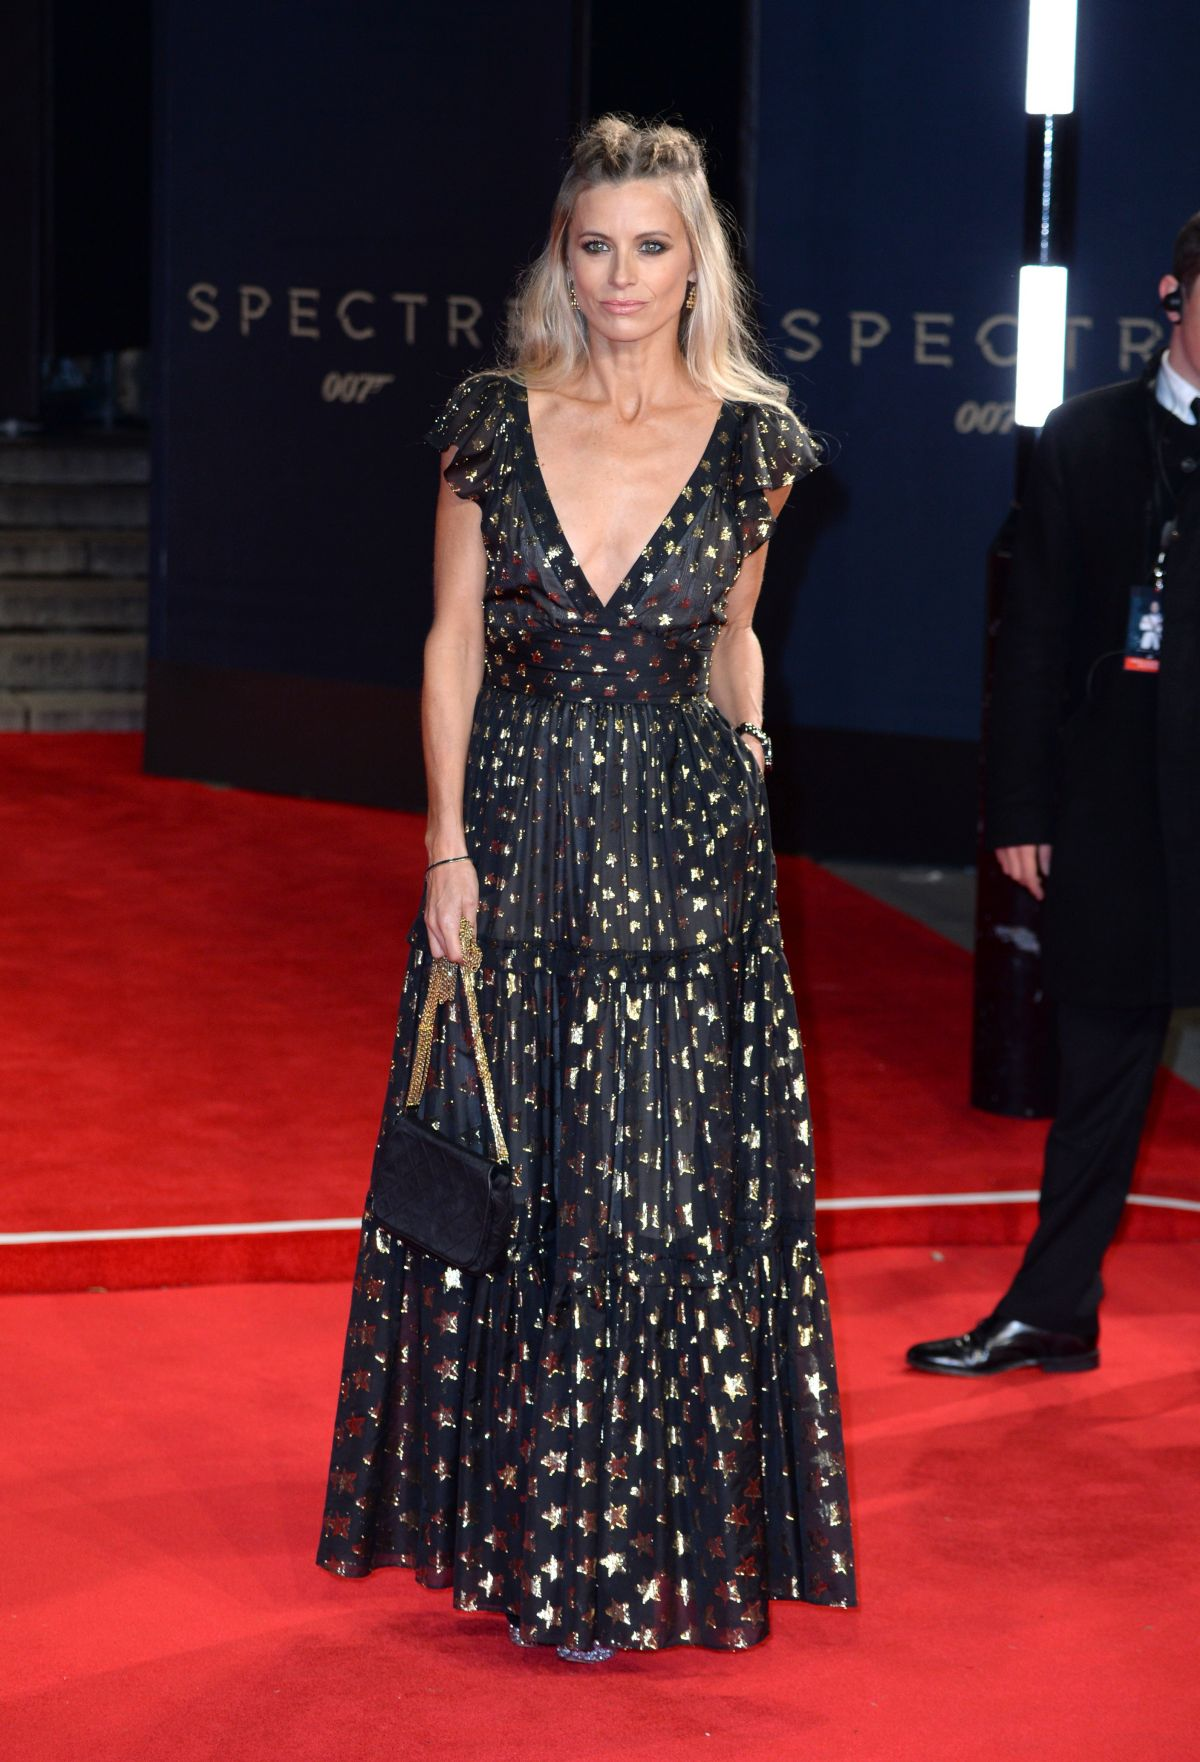 LAURA BAIELY at Spectre Premiere in London 10/26/2015